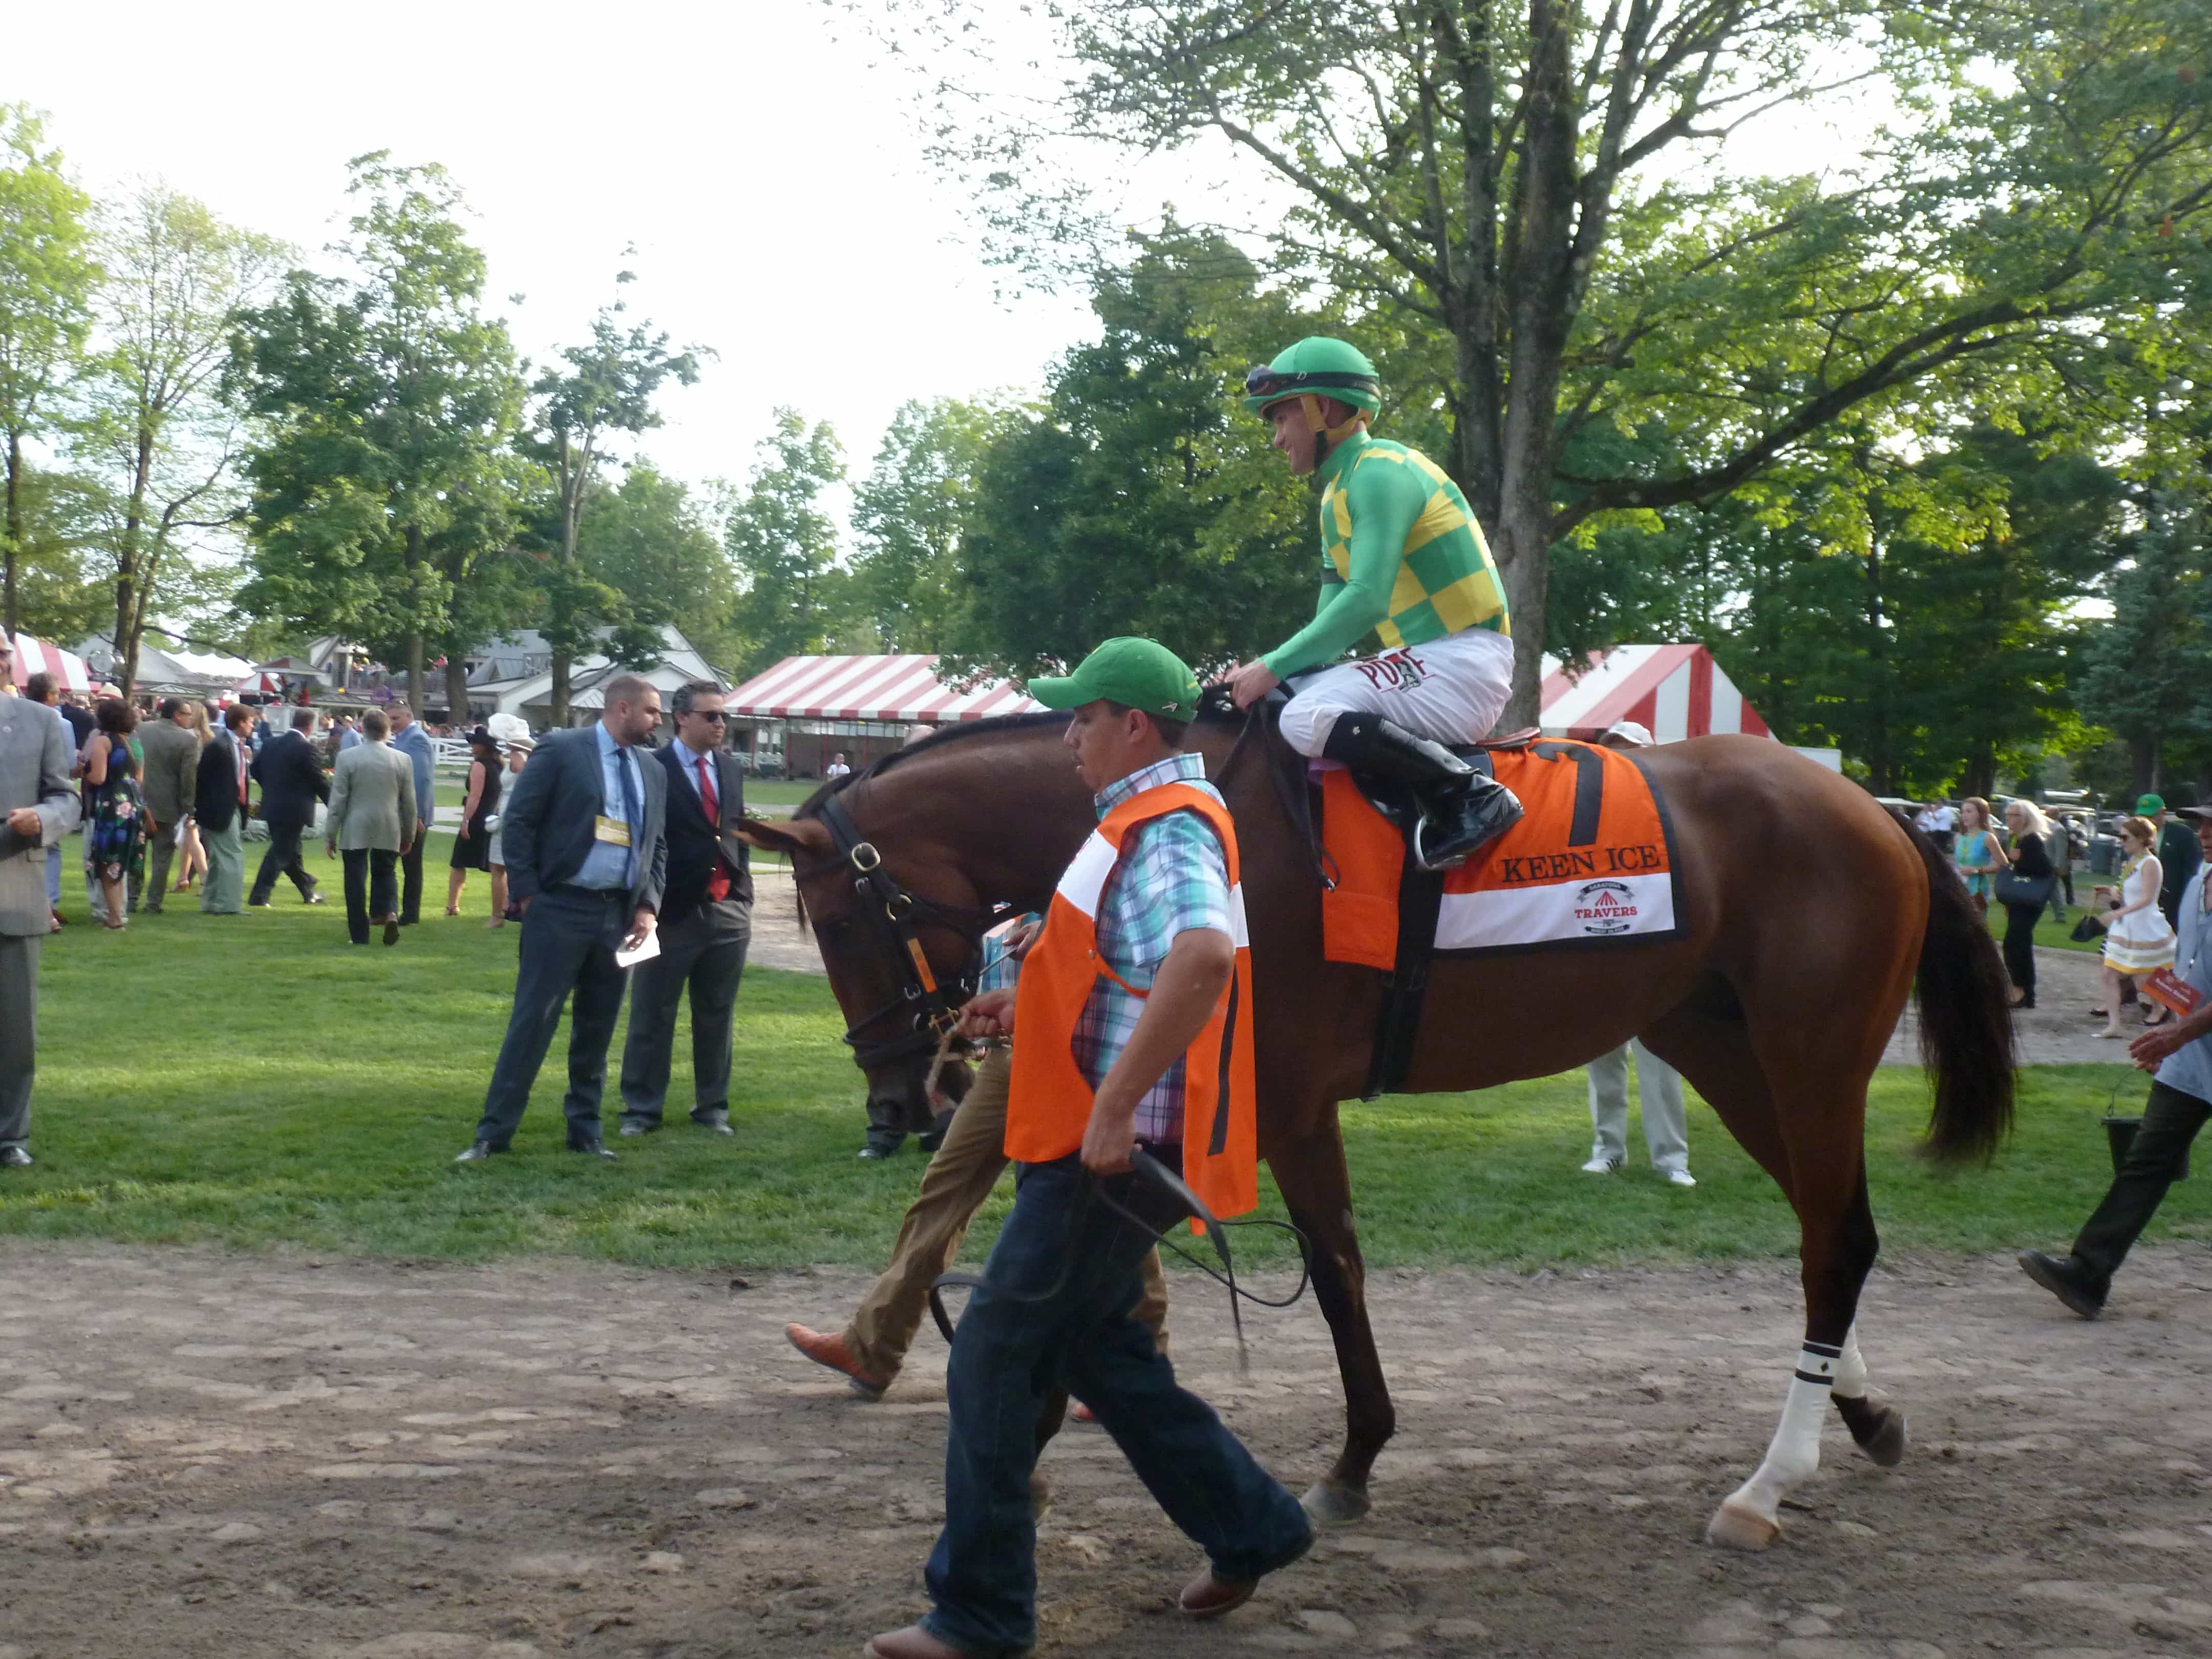 Keen Ice - TRAVERS STAKES (Grade I) - 08-29-15 - R11 - SAR - Photo credit: Mike Spector (Follow him on Twitter @SaratogaSlim)